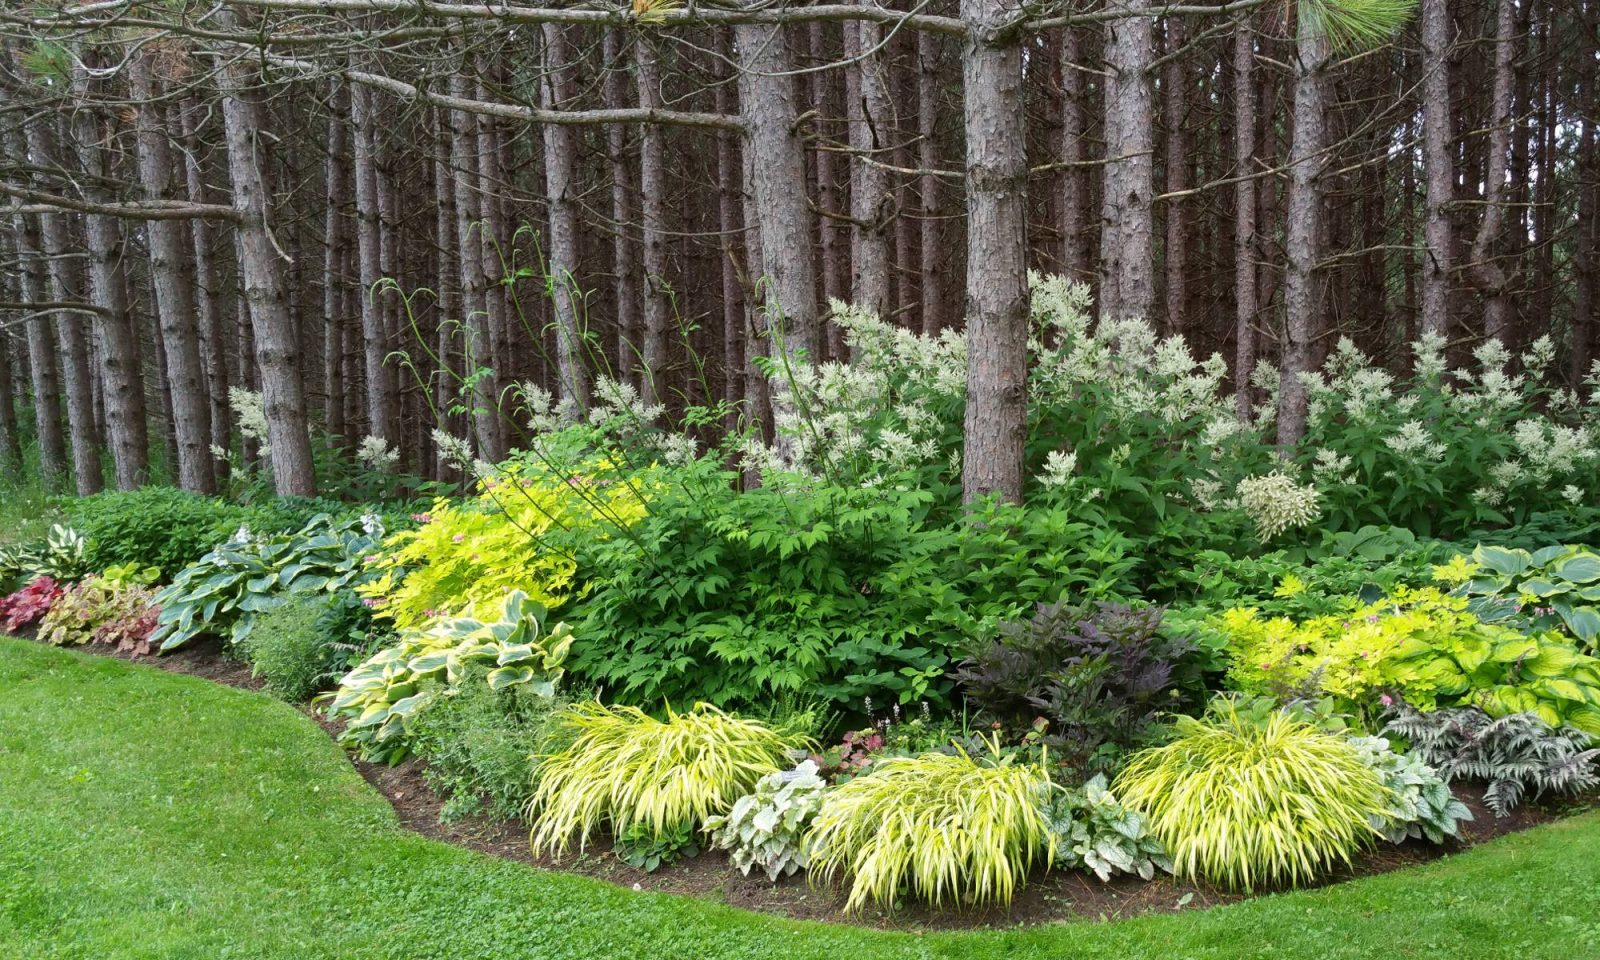 Botanical Gardens at Plant Paradise Country Gardens in Caledon, Bolton, Palgrave, ON